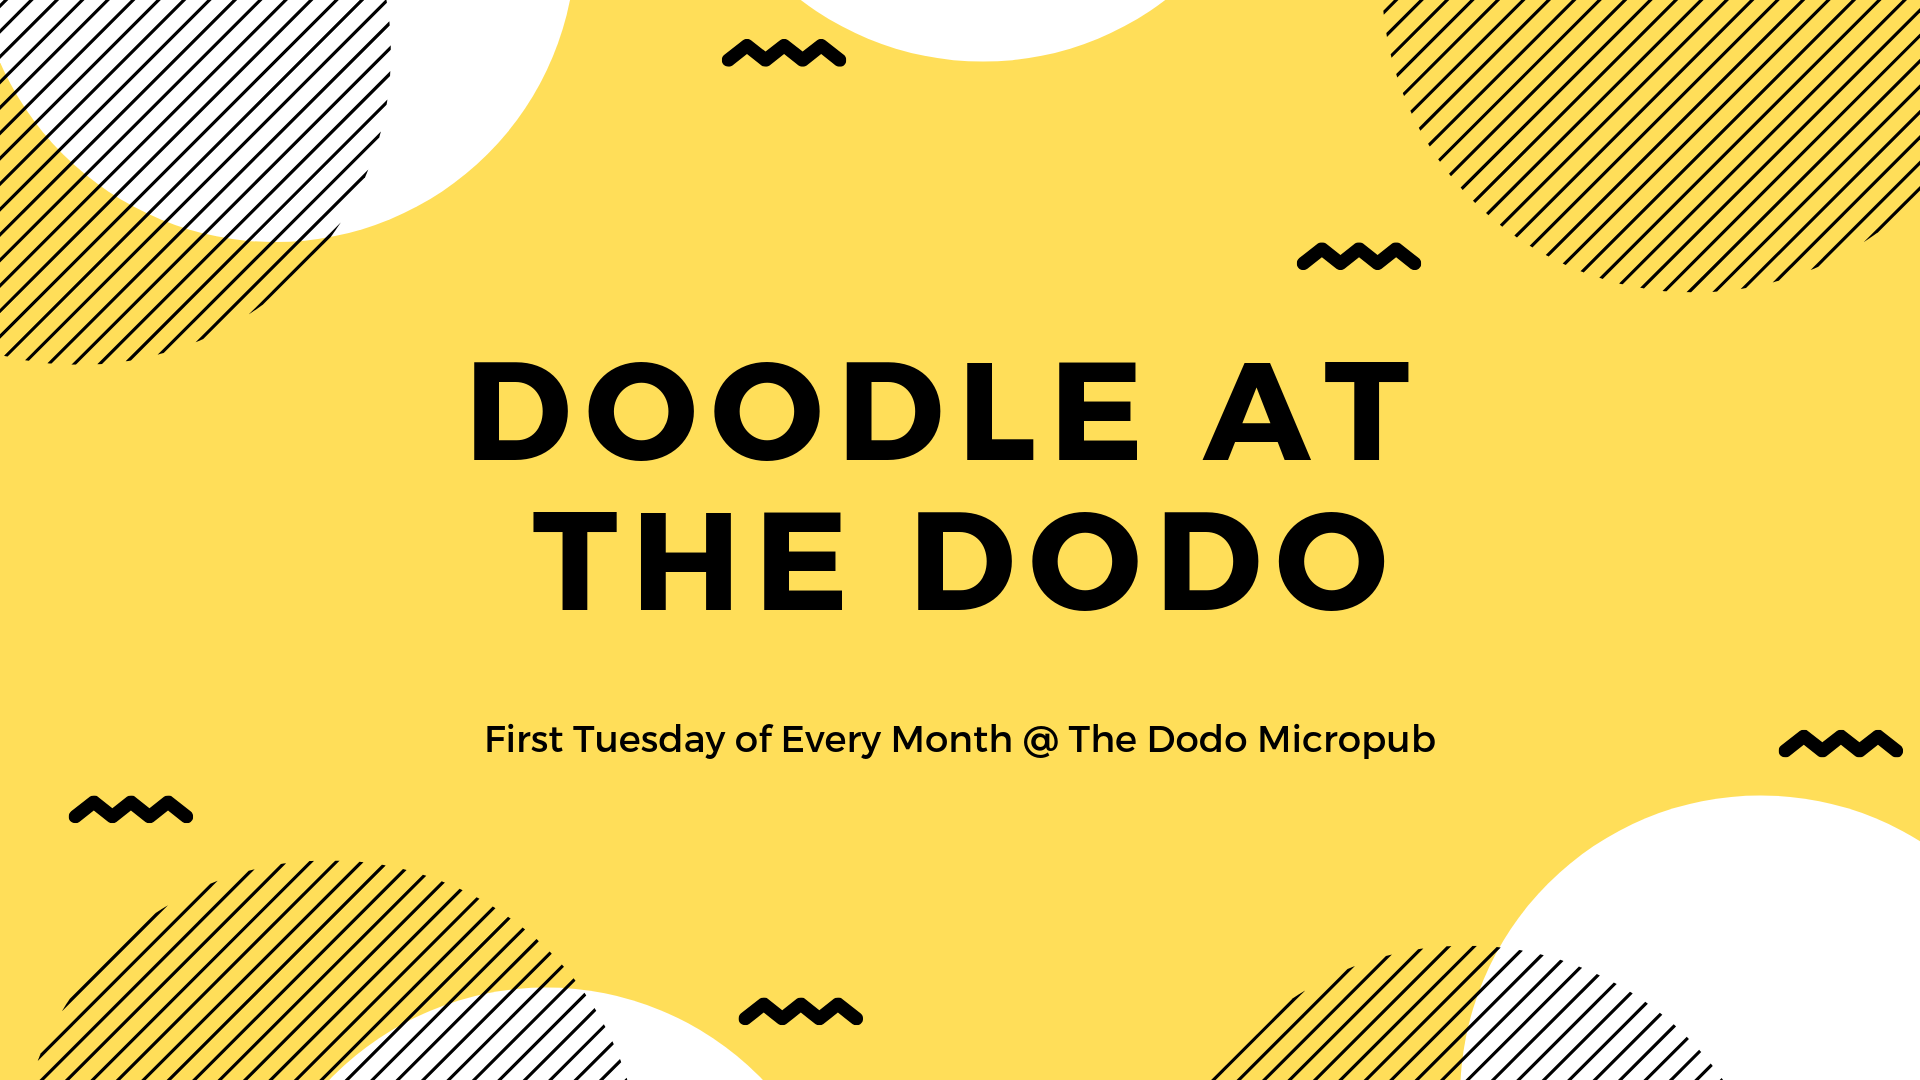 Doodle At The Dodo Micropub